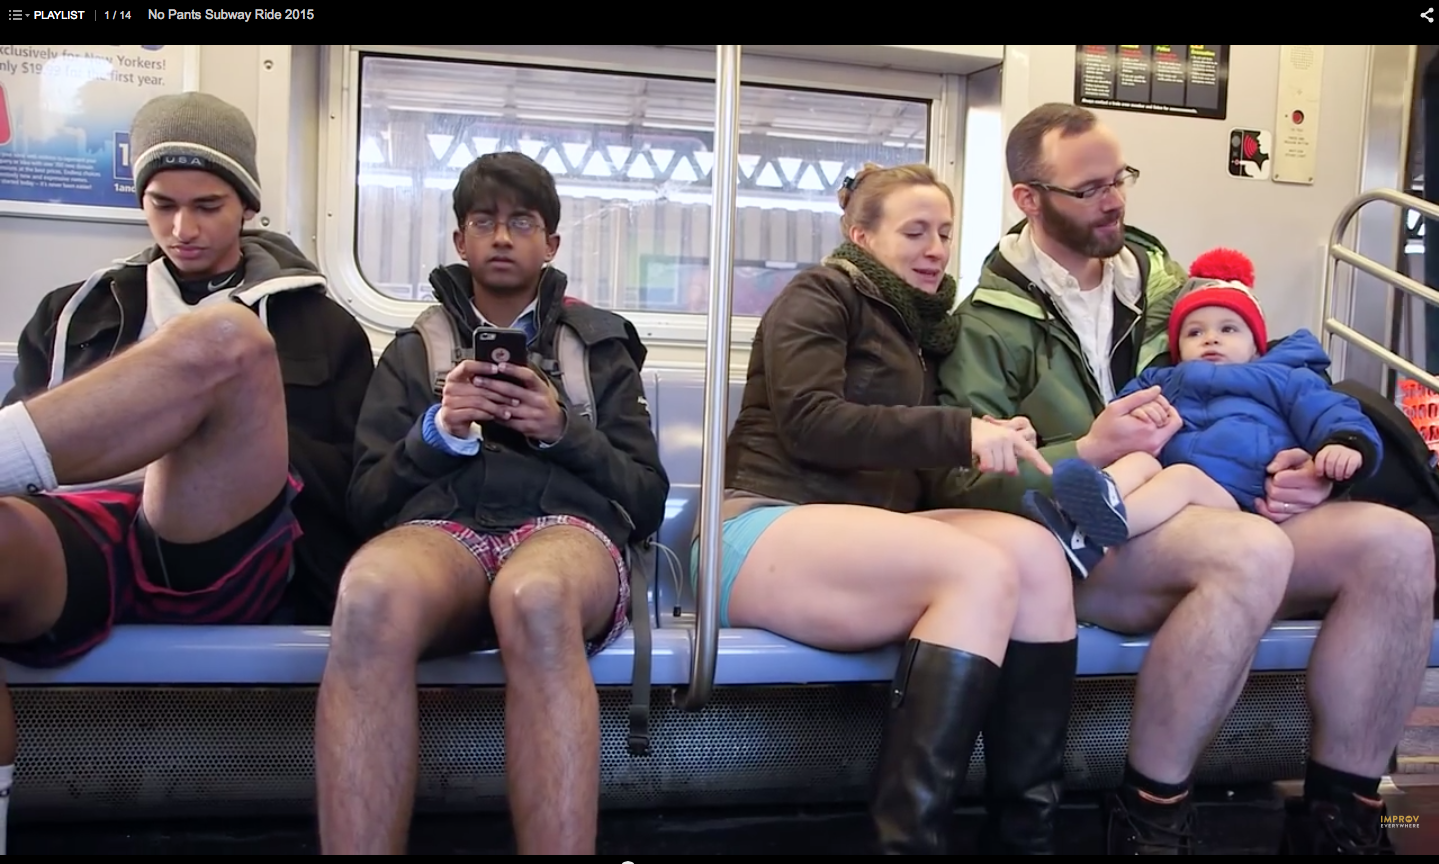 improveverywhere, no pants subway rid, nYc